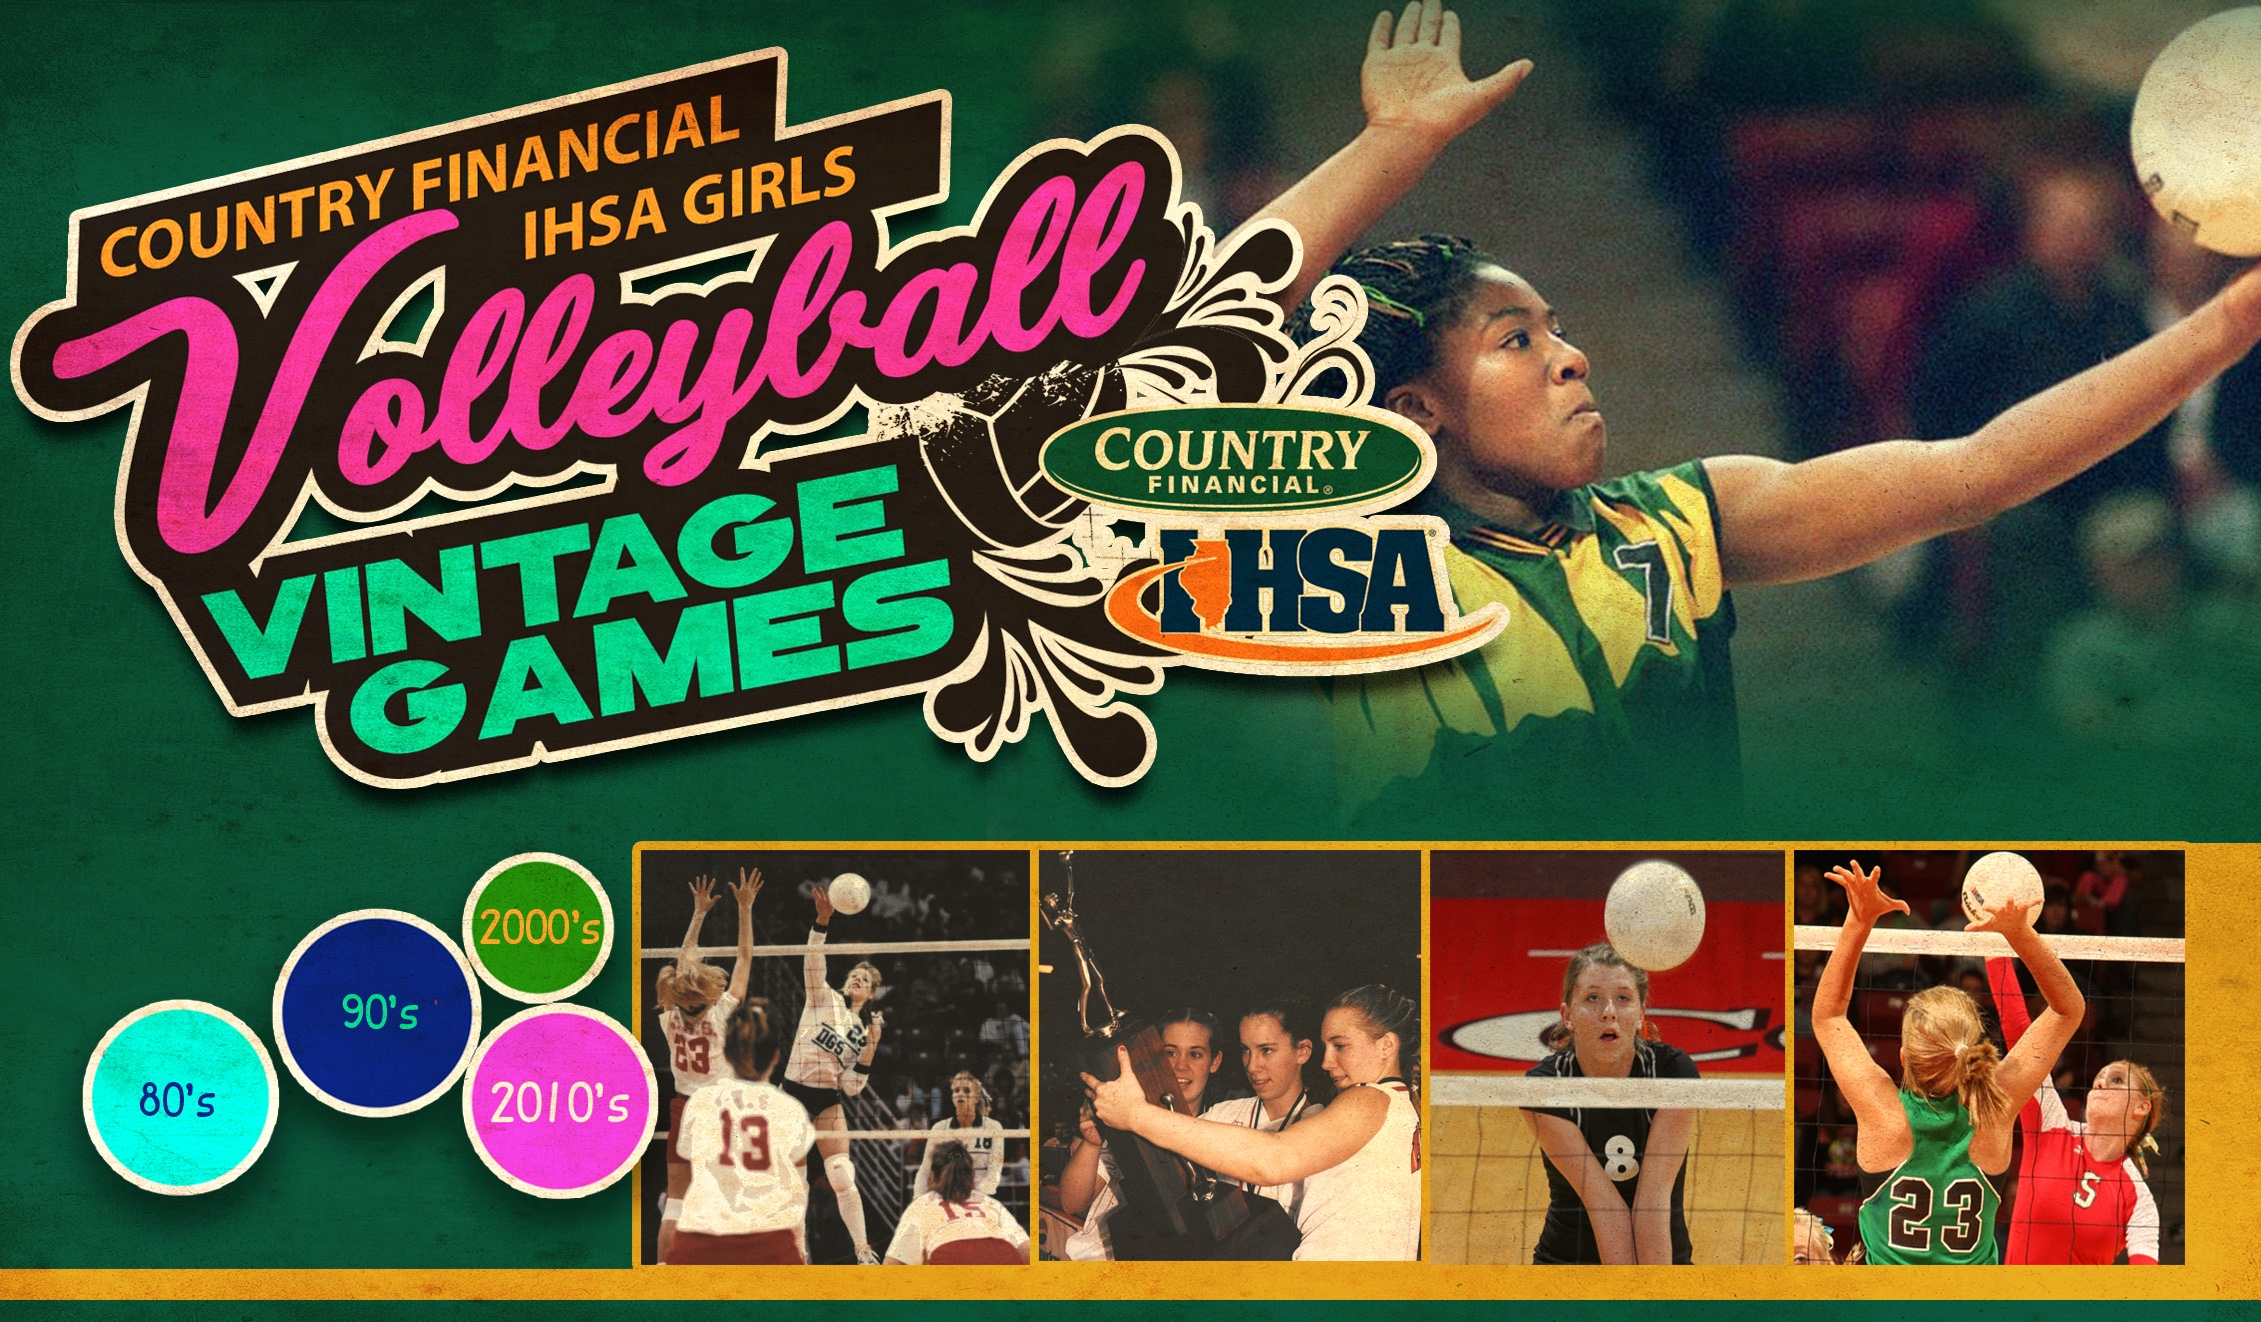 Vote On The Greatest Ihsa Girls Volleyball Matches Via The Country Financial Vintage Games Series